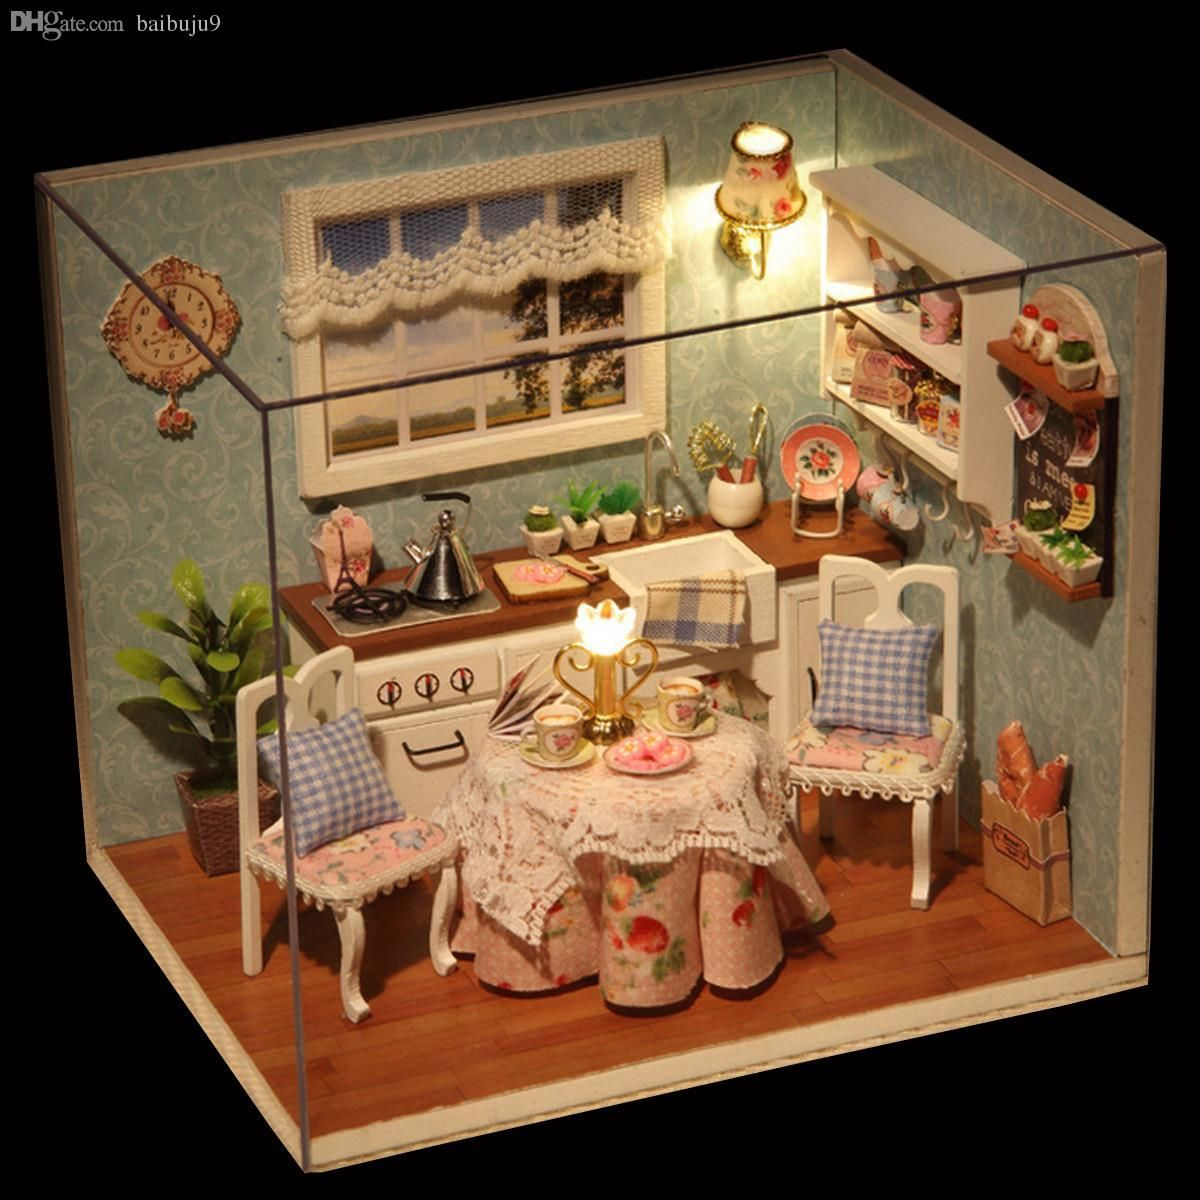 Wholesale Diy Wooden Doll House Toys Dollhouse Miniature Box Kit With Cover  And Led Furnitures Handcraft Miniature Dollhouse Kitchen Model Dollhouse  Babies ...